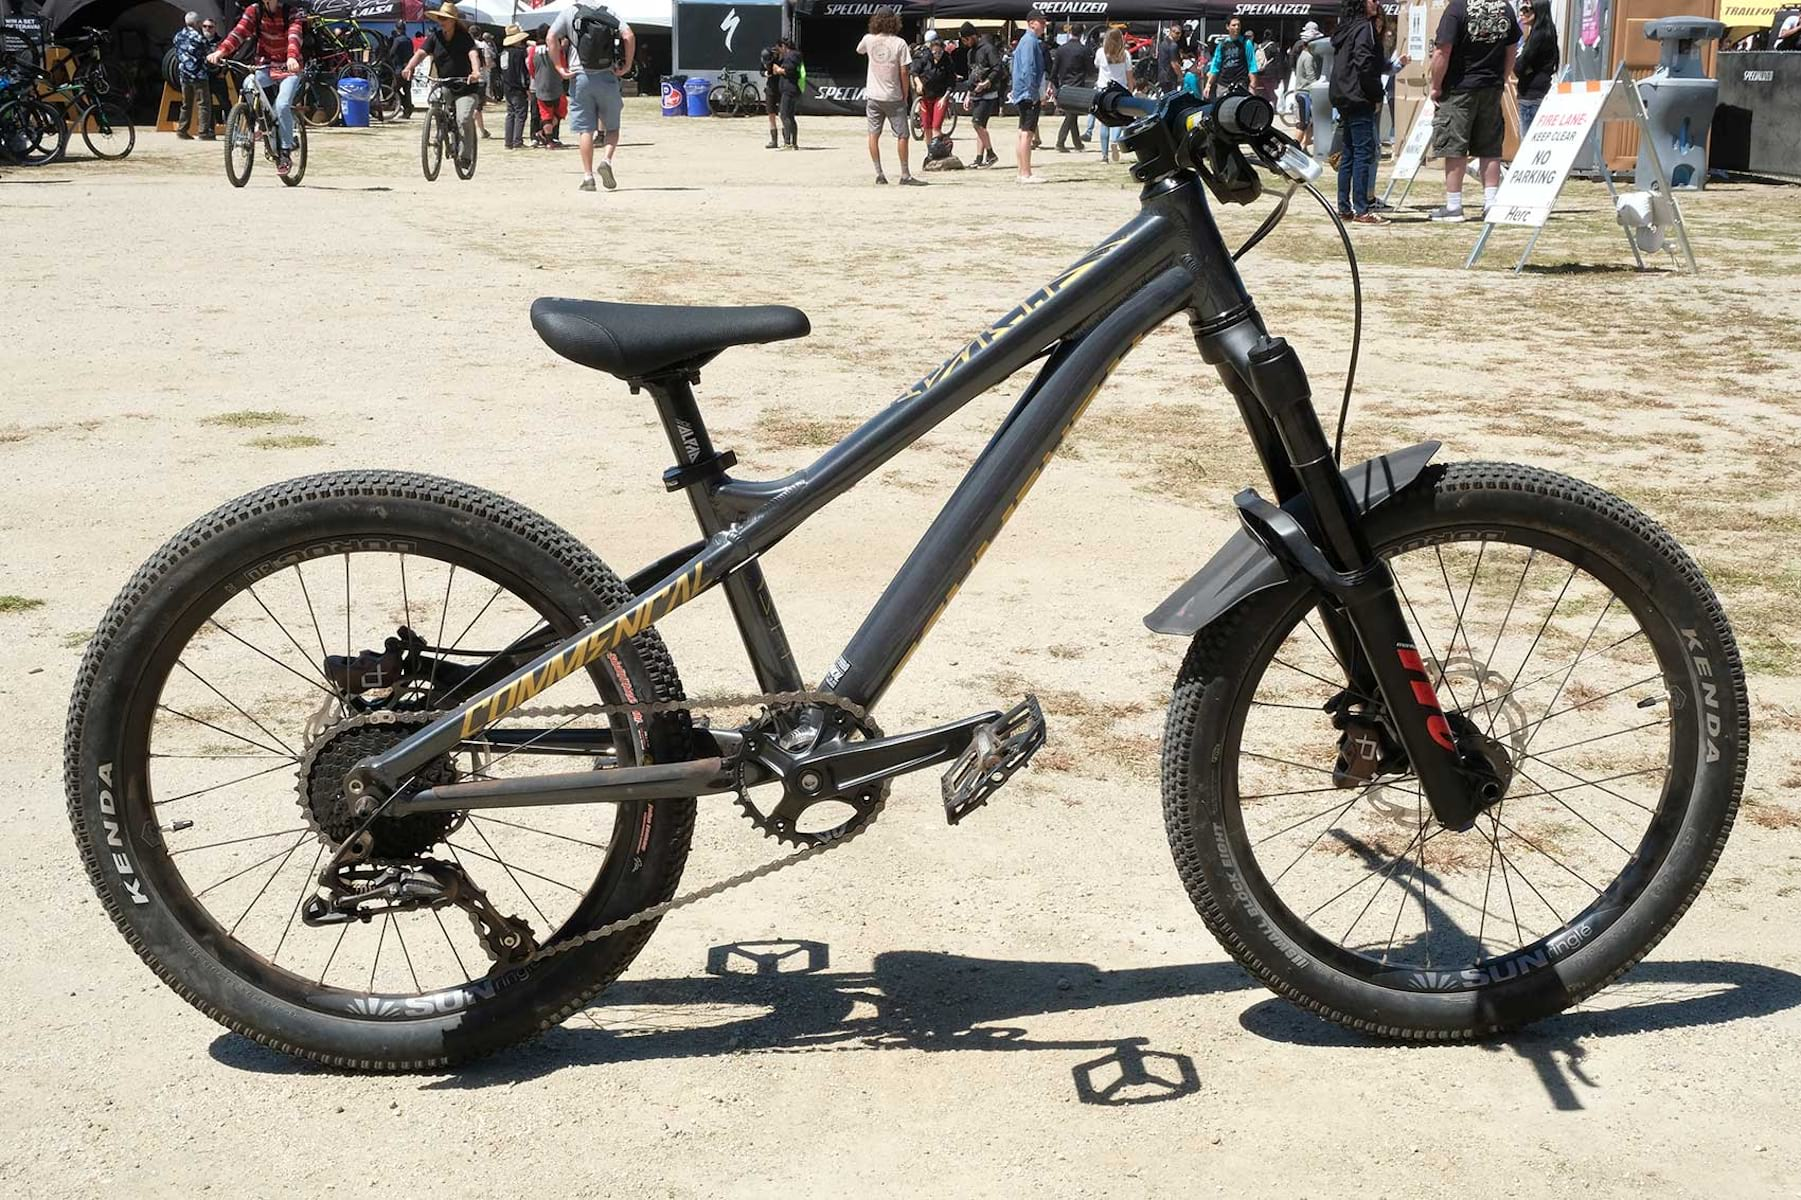 sea otter 2019, hayes junit, manitou